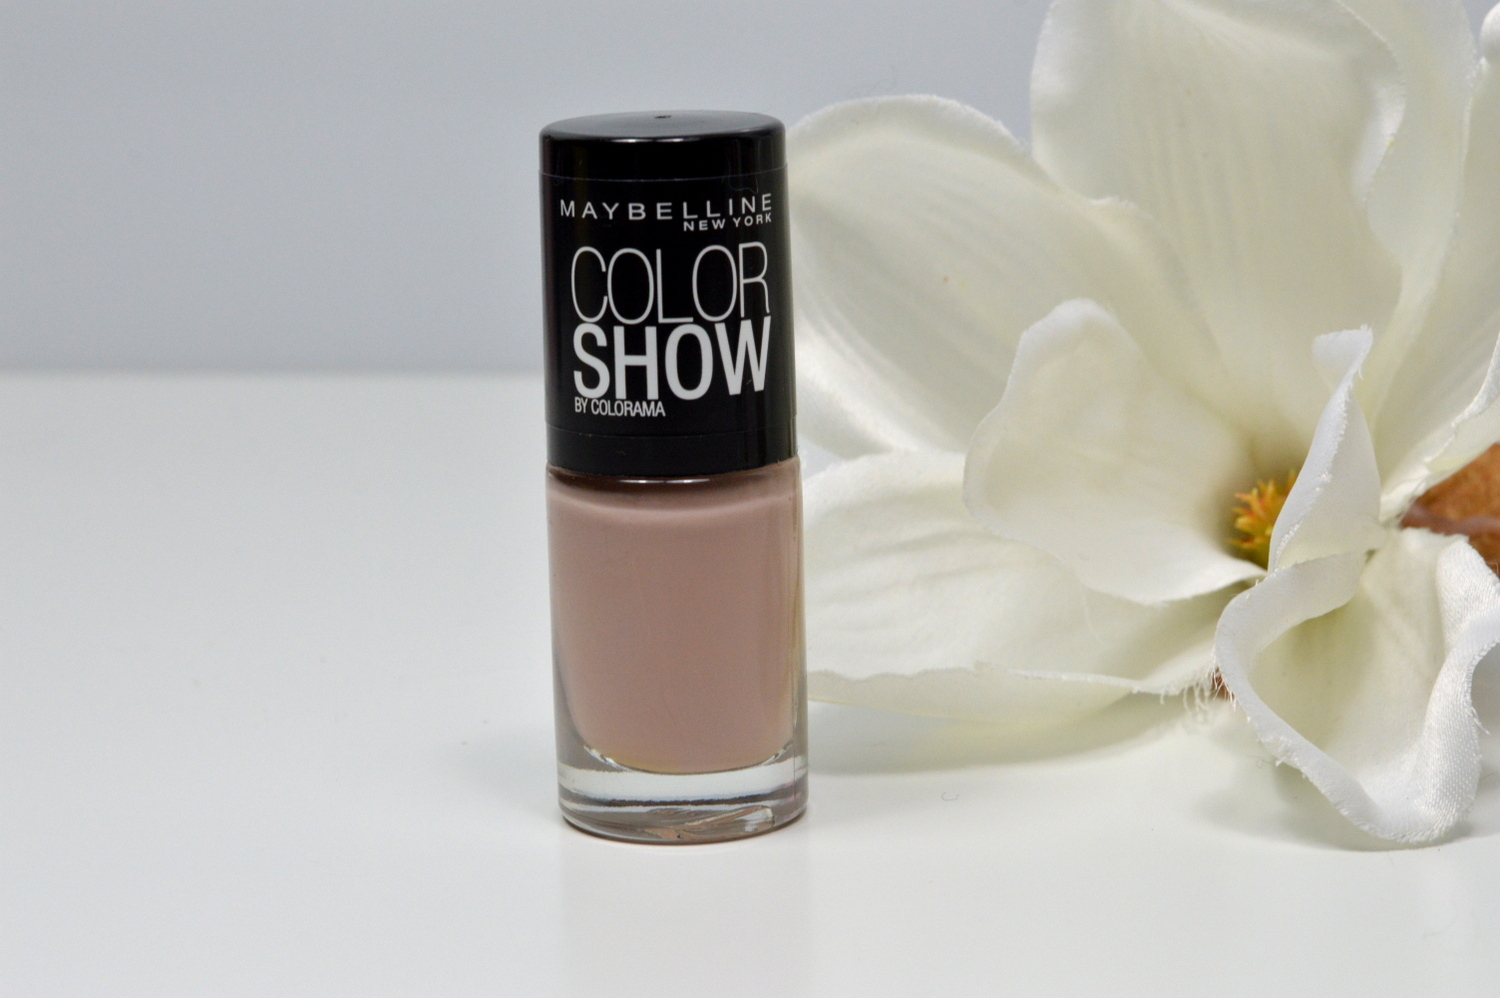 Maybelline Latte Nagellack Nailpolish